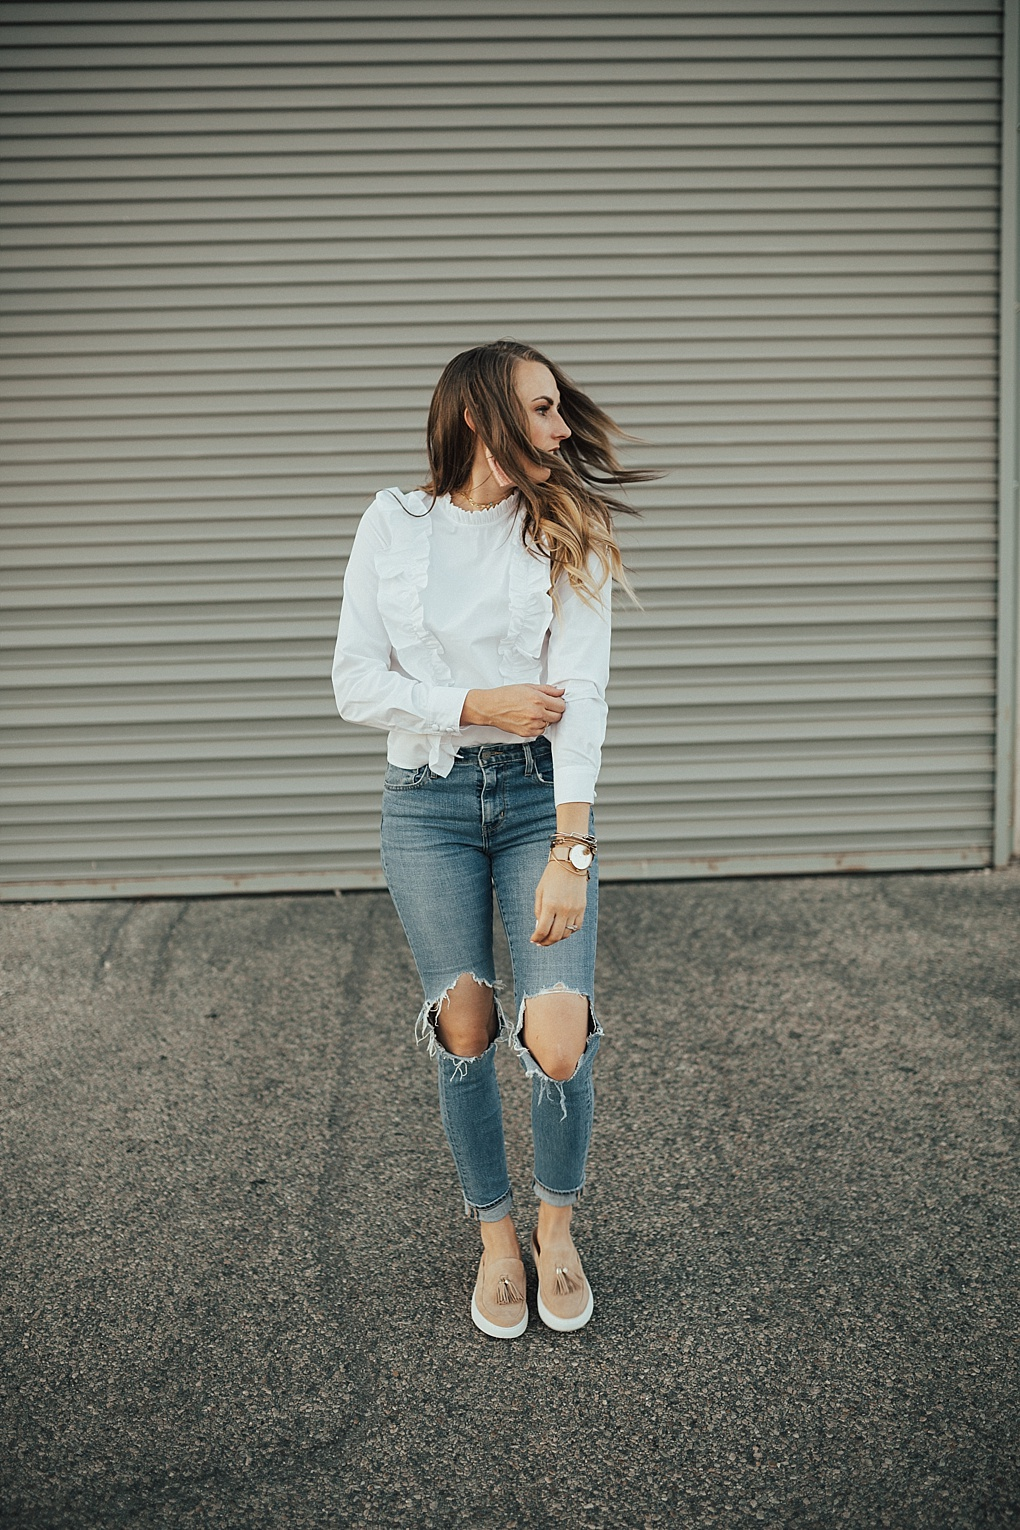 How To Pair A Dressy Ruffle Top with Jeans by Utah fashion blogger Dani Marie